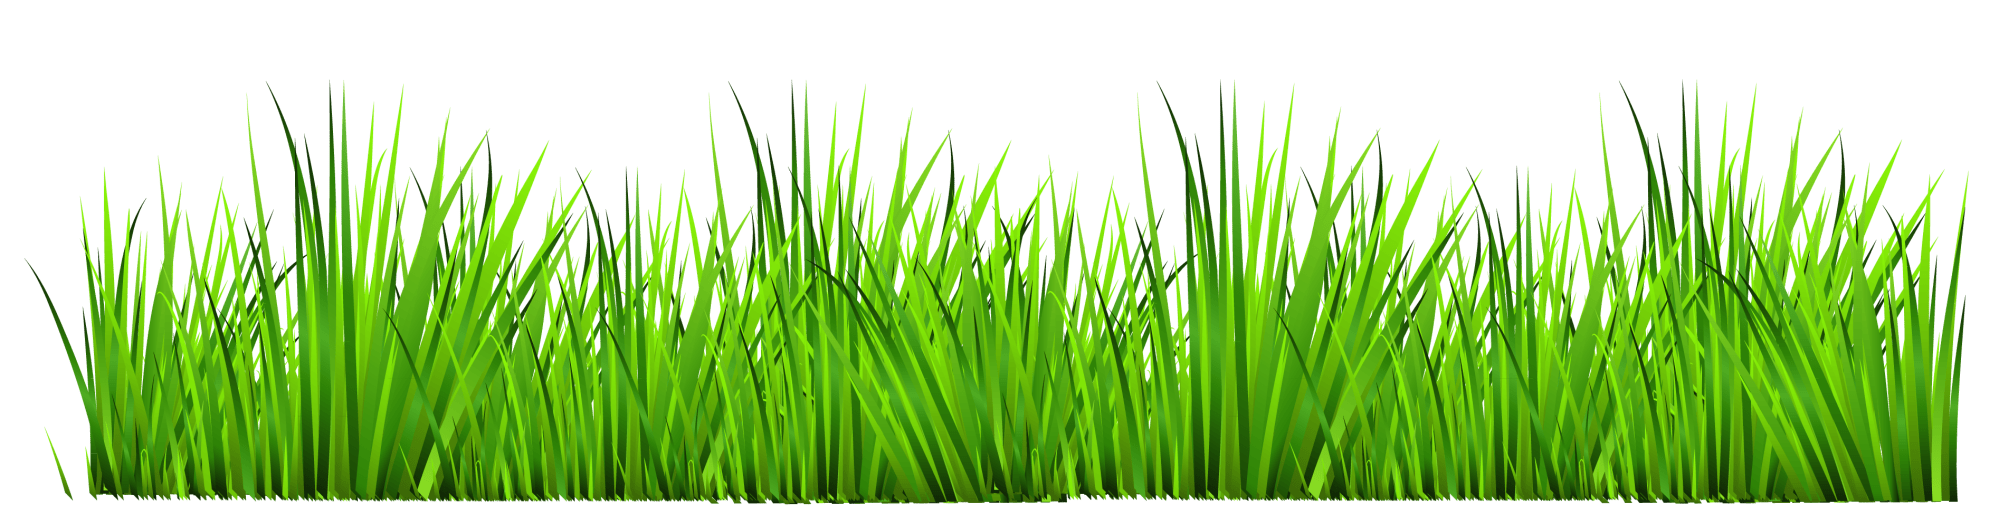 hight resolution of grass clip art clipart cliparts for you